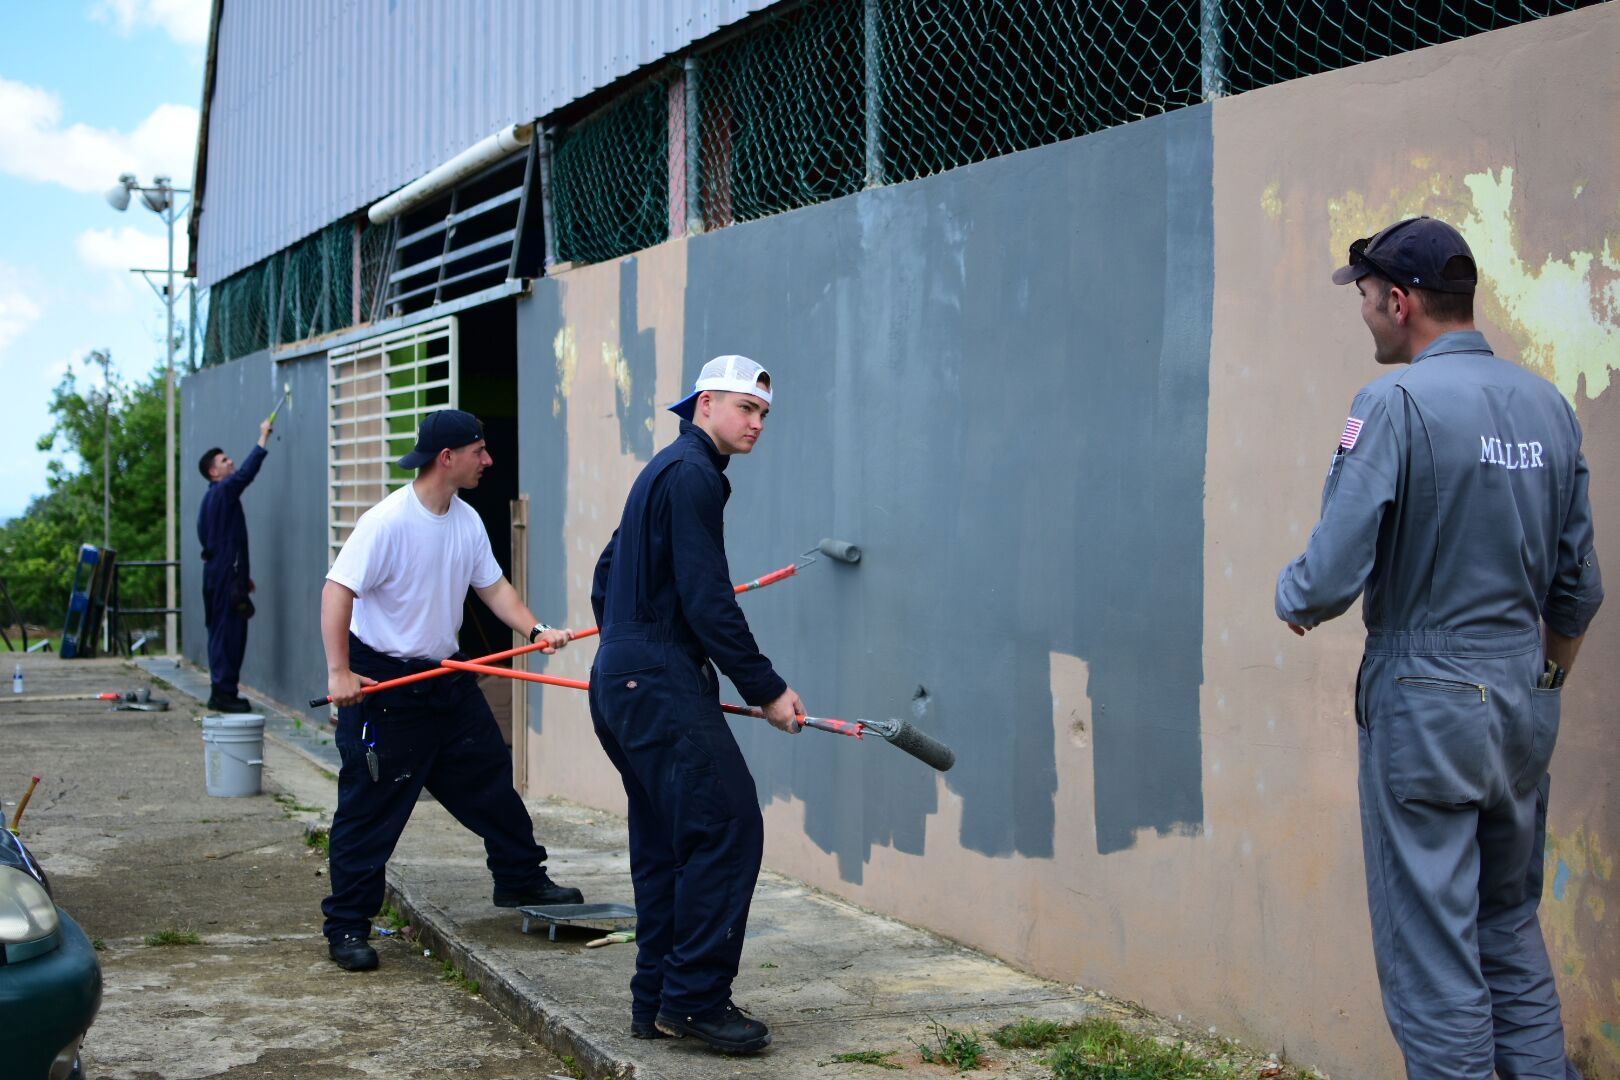 SUNY Maritime College students paint a building exterior in Puerto Rico.